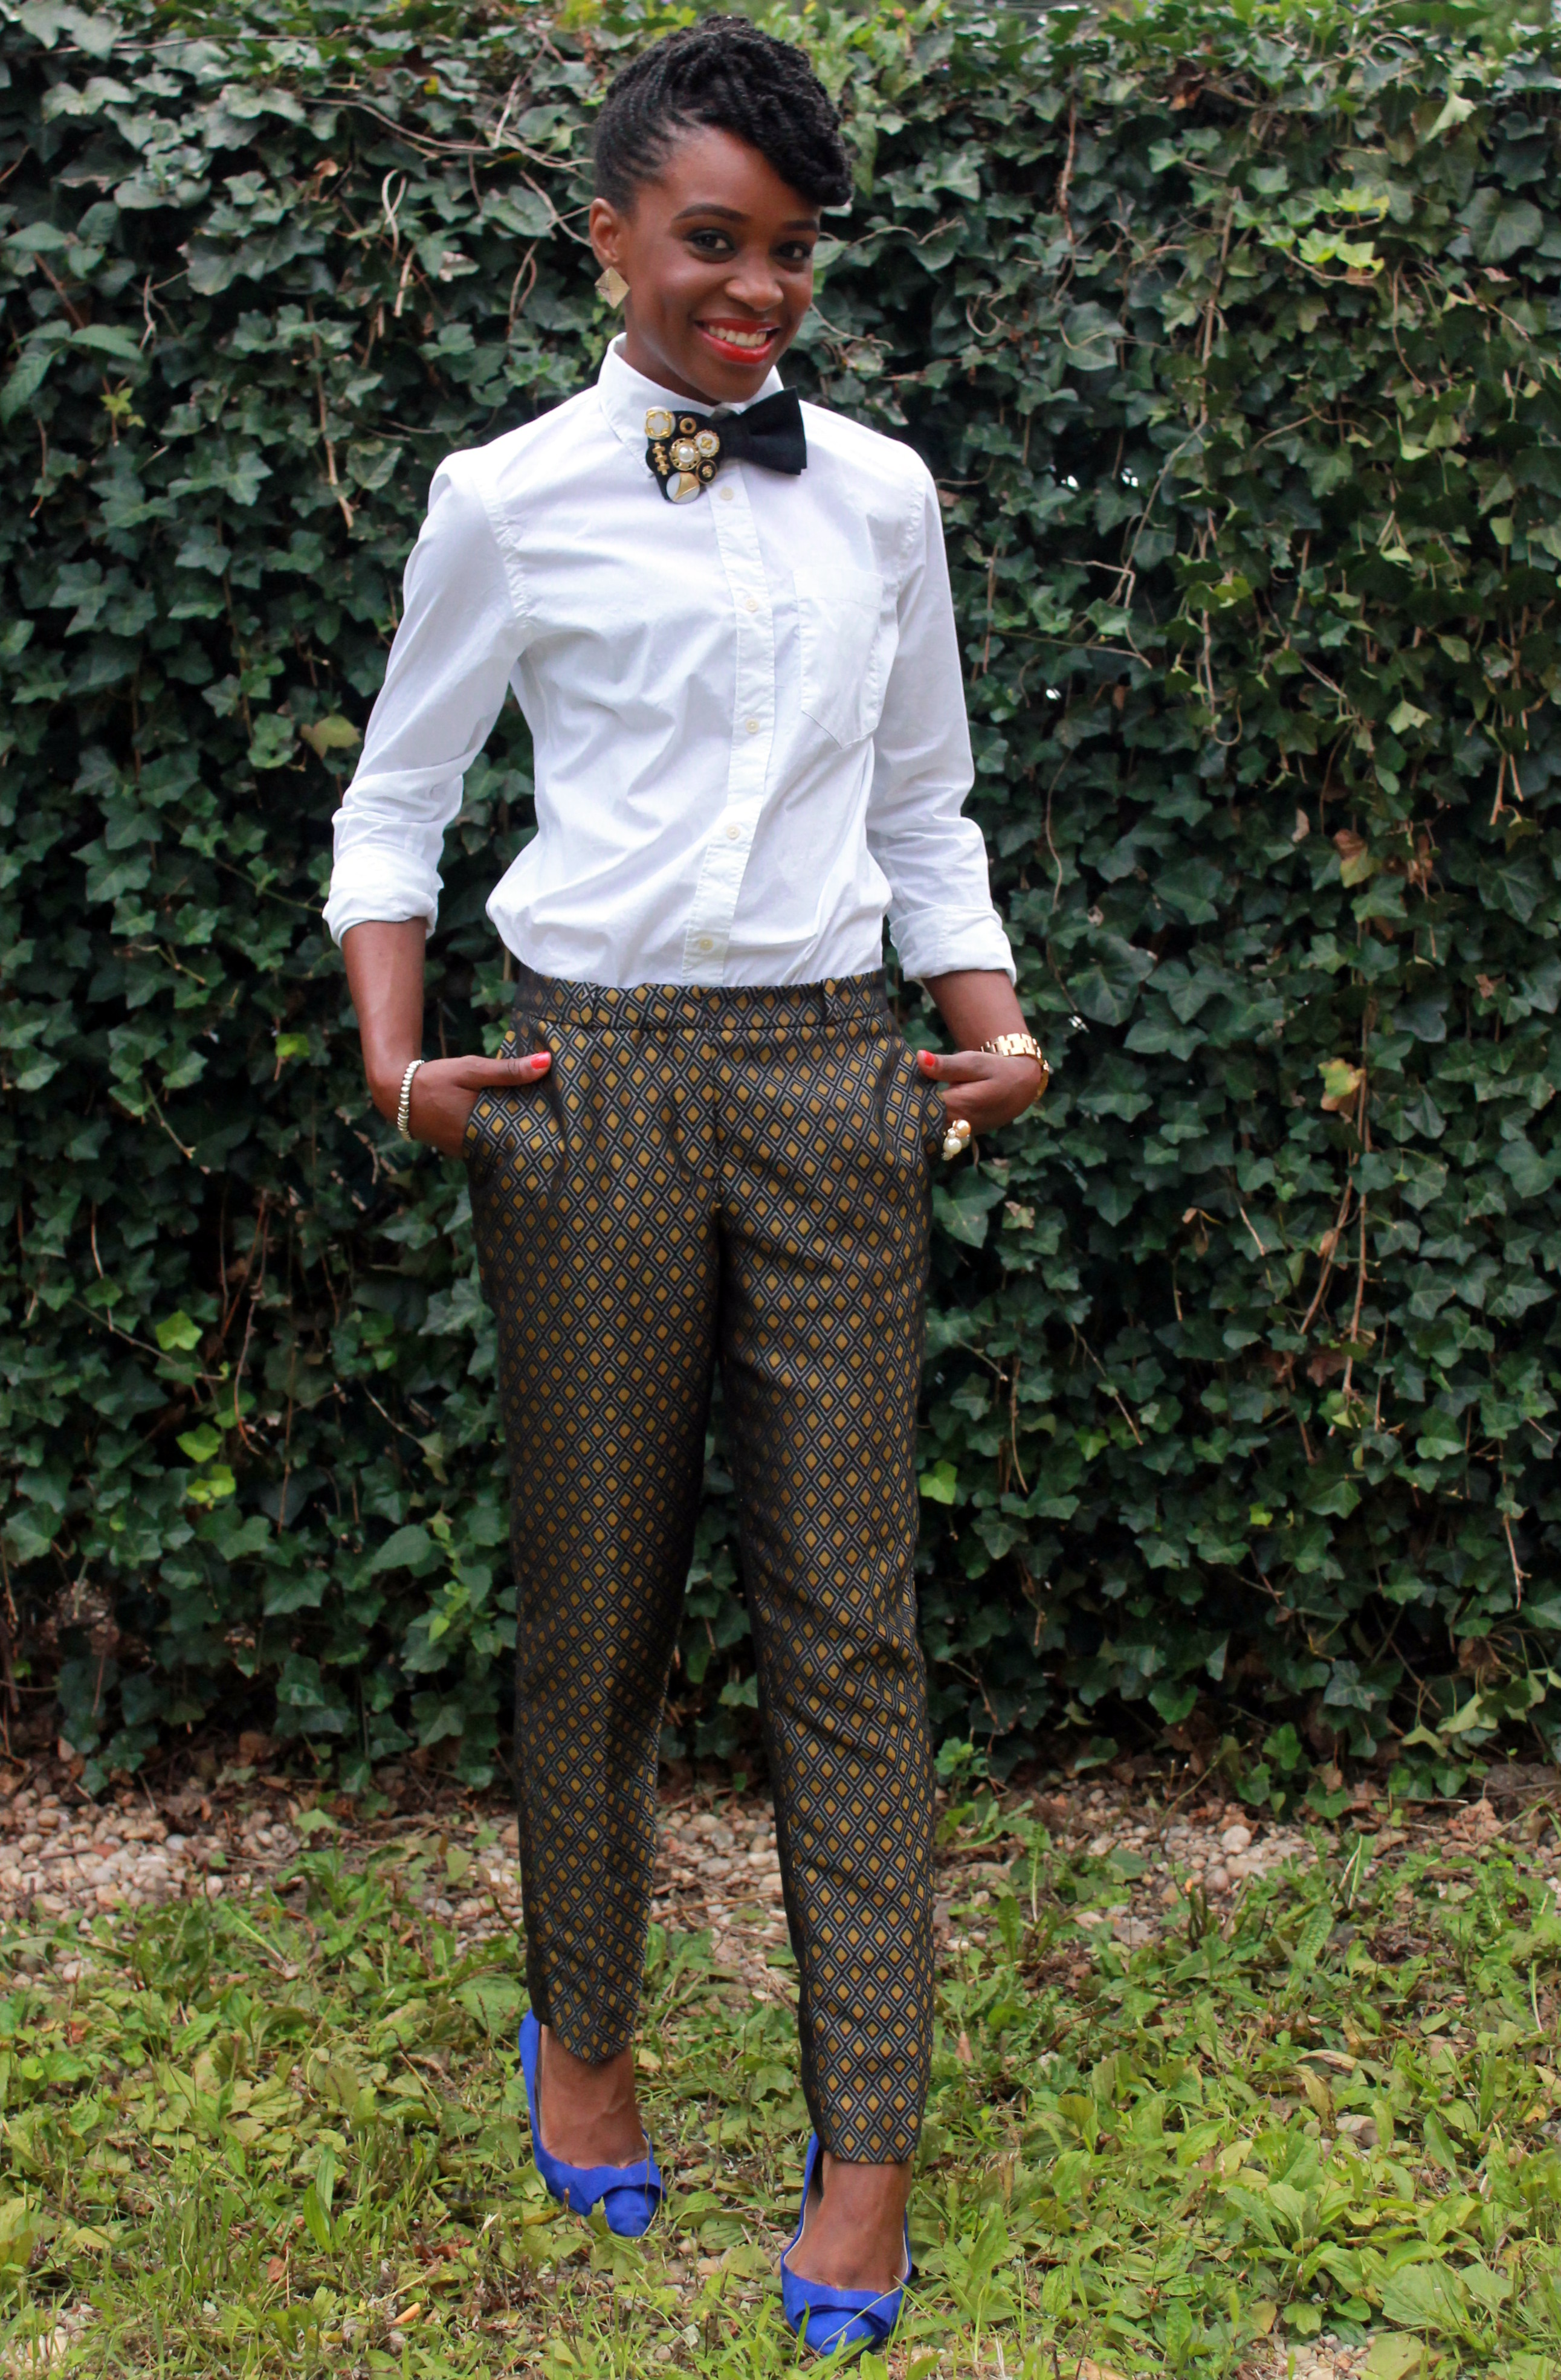 Printed trousers & bedazzled tie (12)